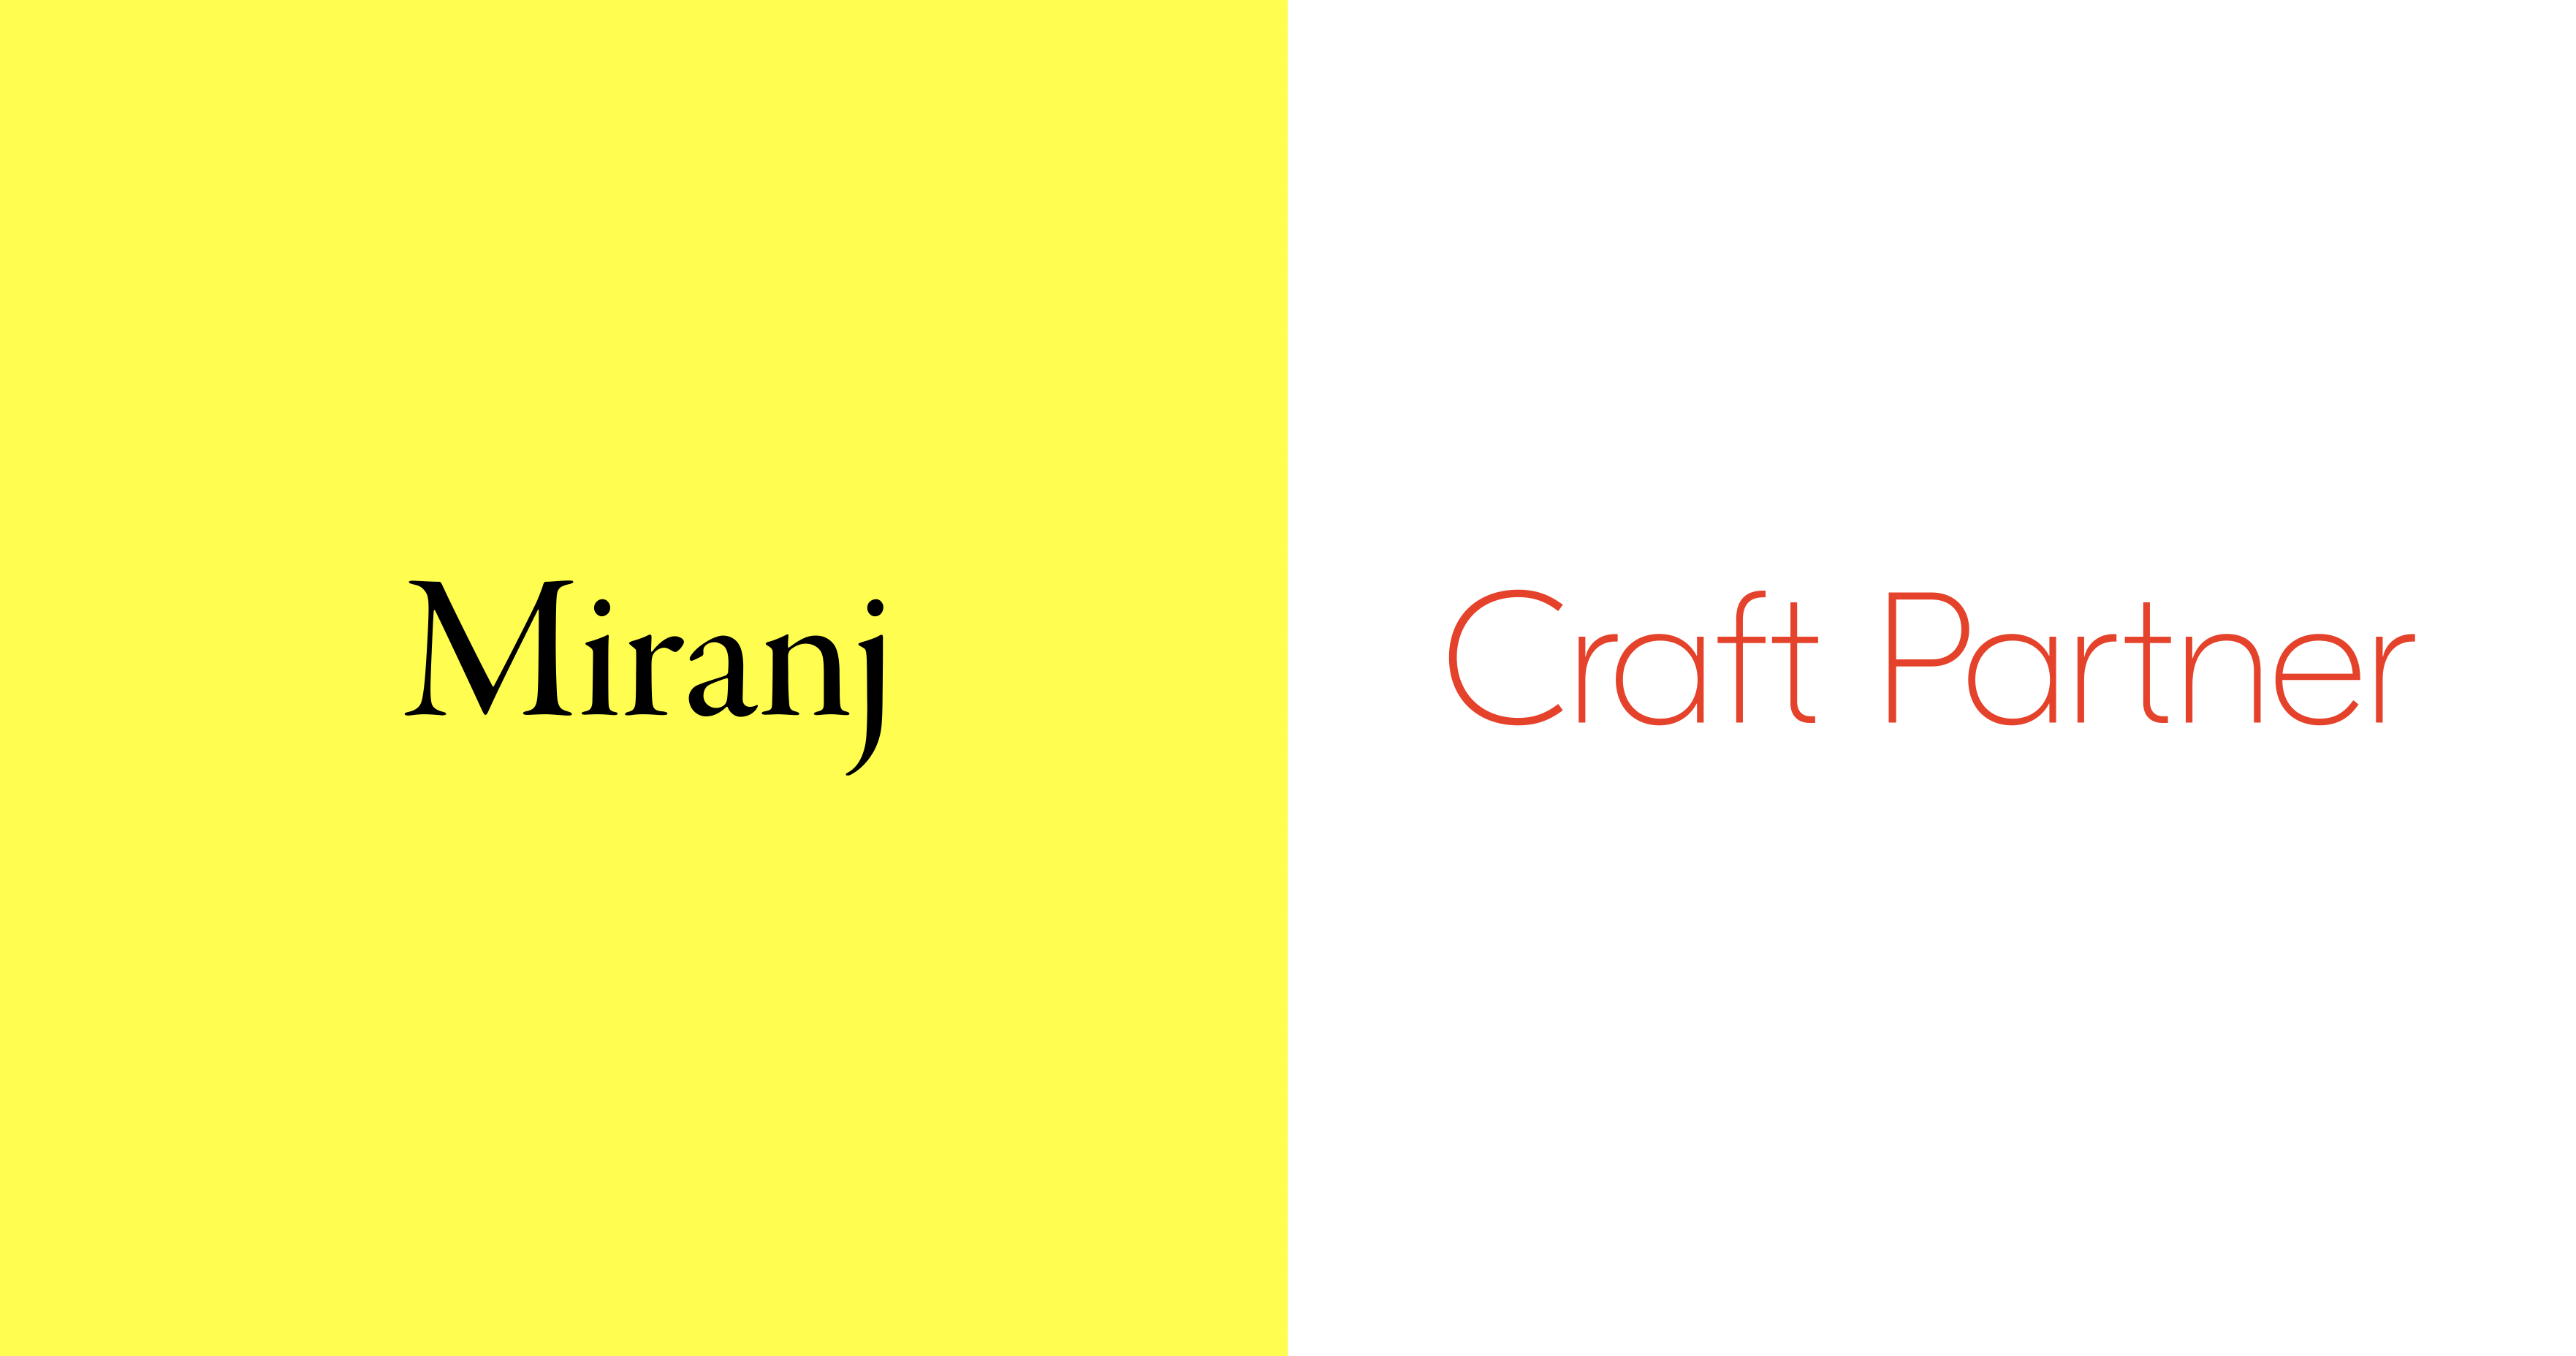 Miranj is a Craft Partner